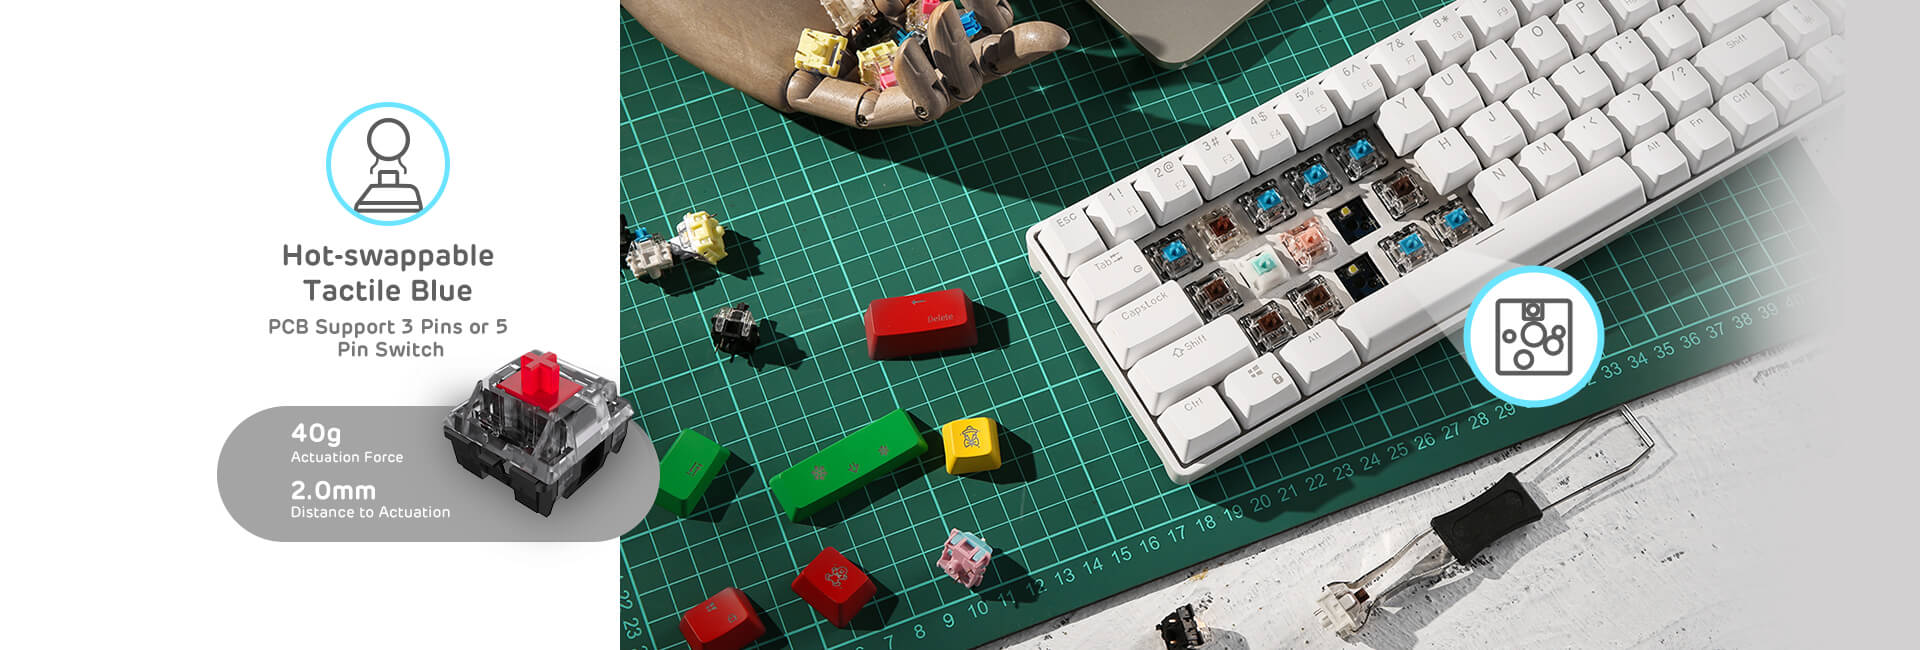 65% sized mechanical white keyboard  with red switches